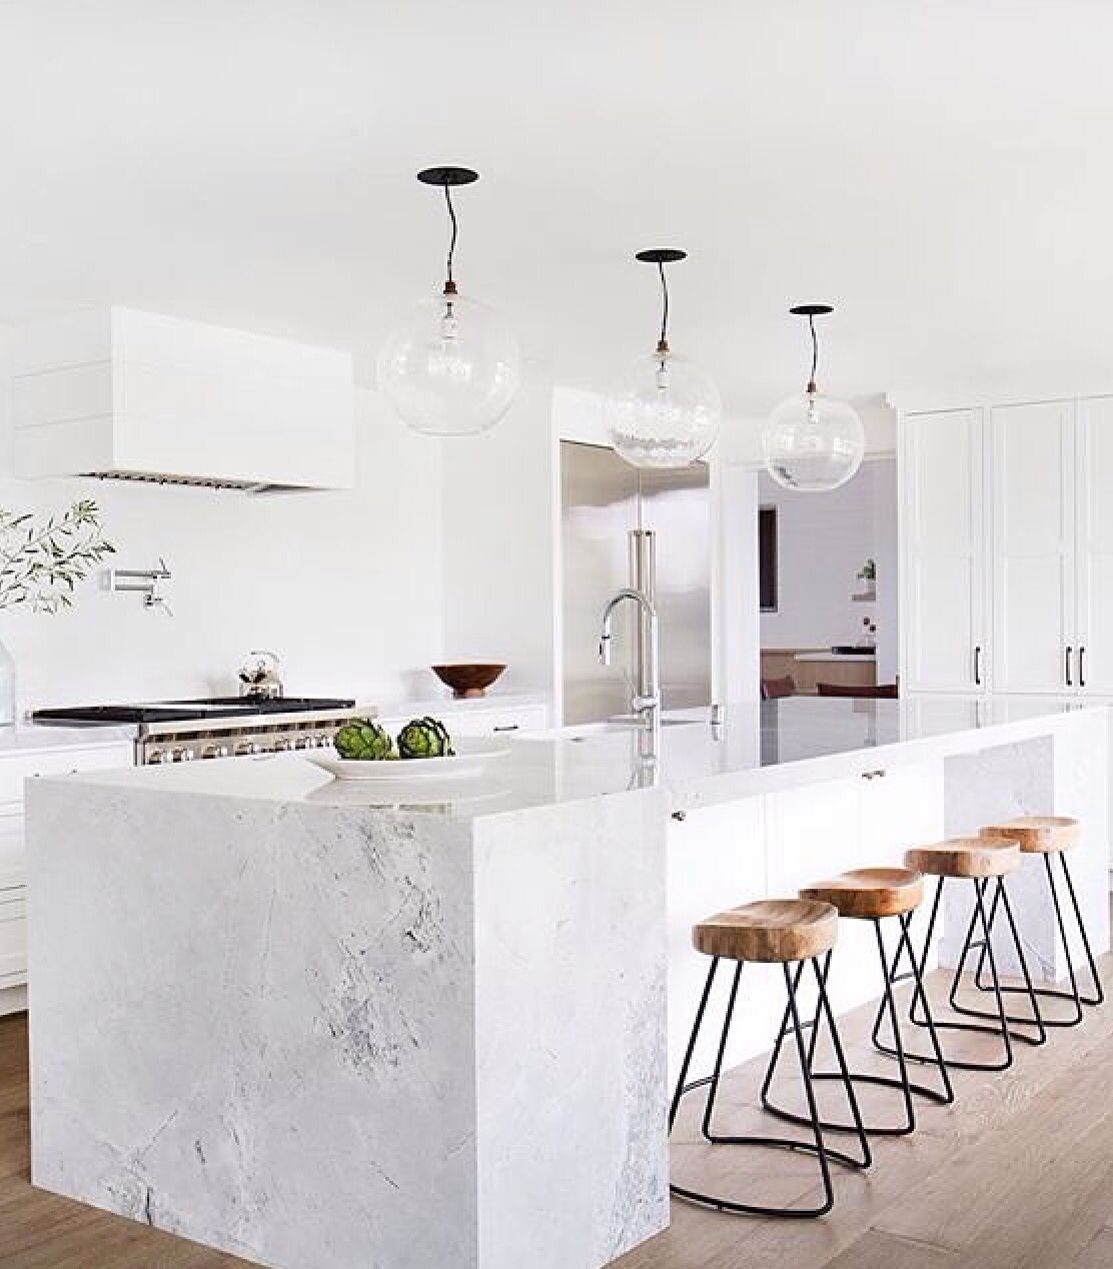 Bright White Modern Kitchen Https Emfurn Com Collections Bar